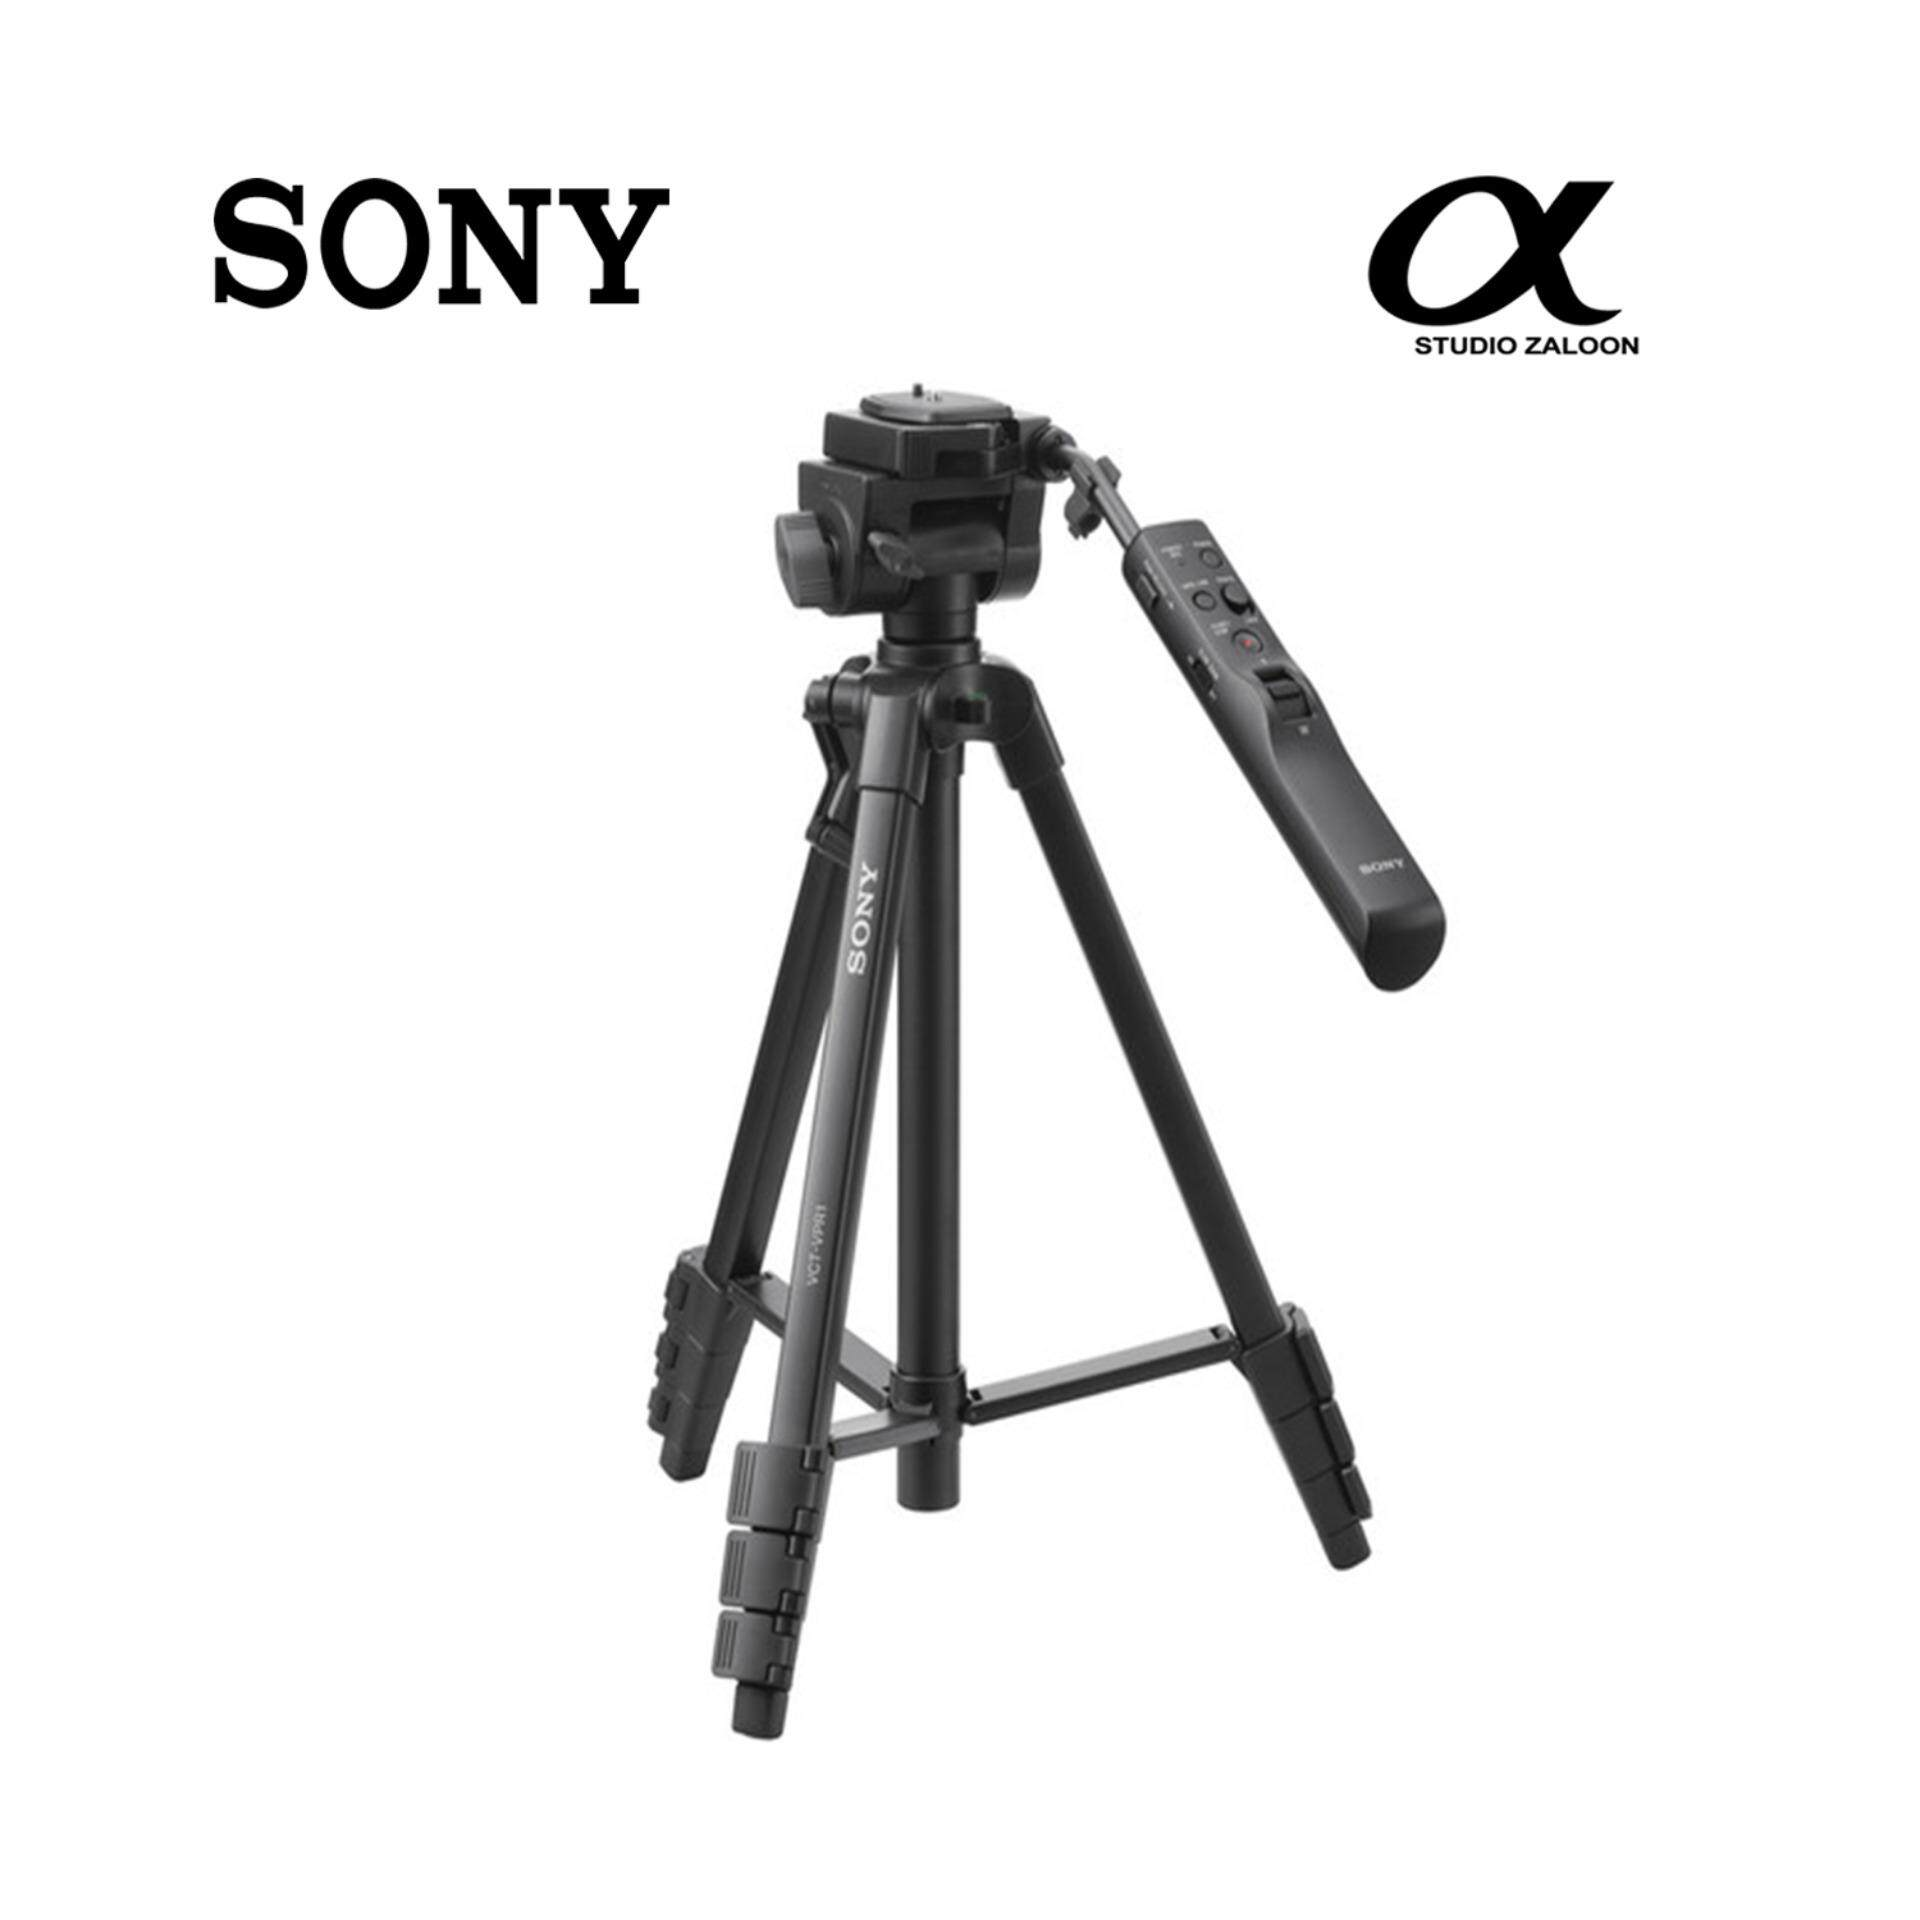 Tripods For The Best Price In Malaysia Tripod Somita St 3110 Sony Vct Vpr1 Compact Remote Control